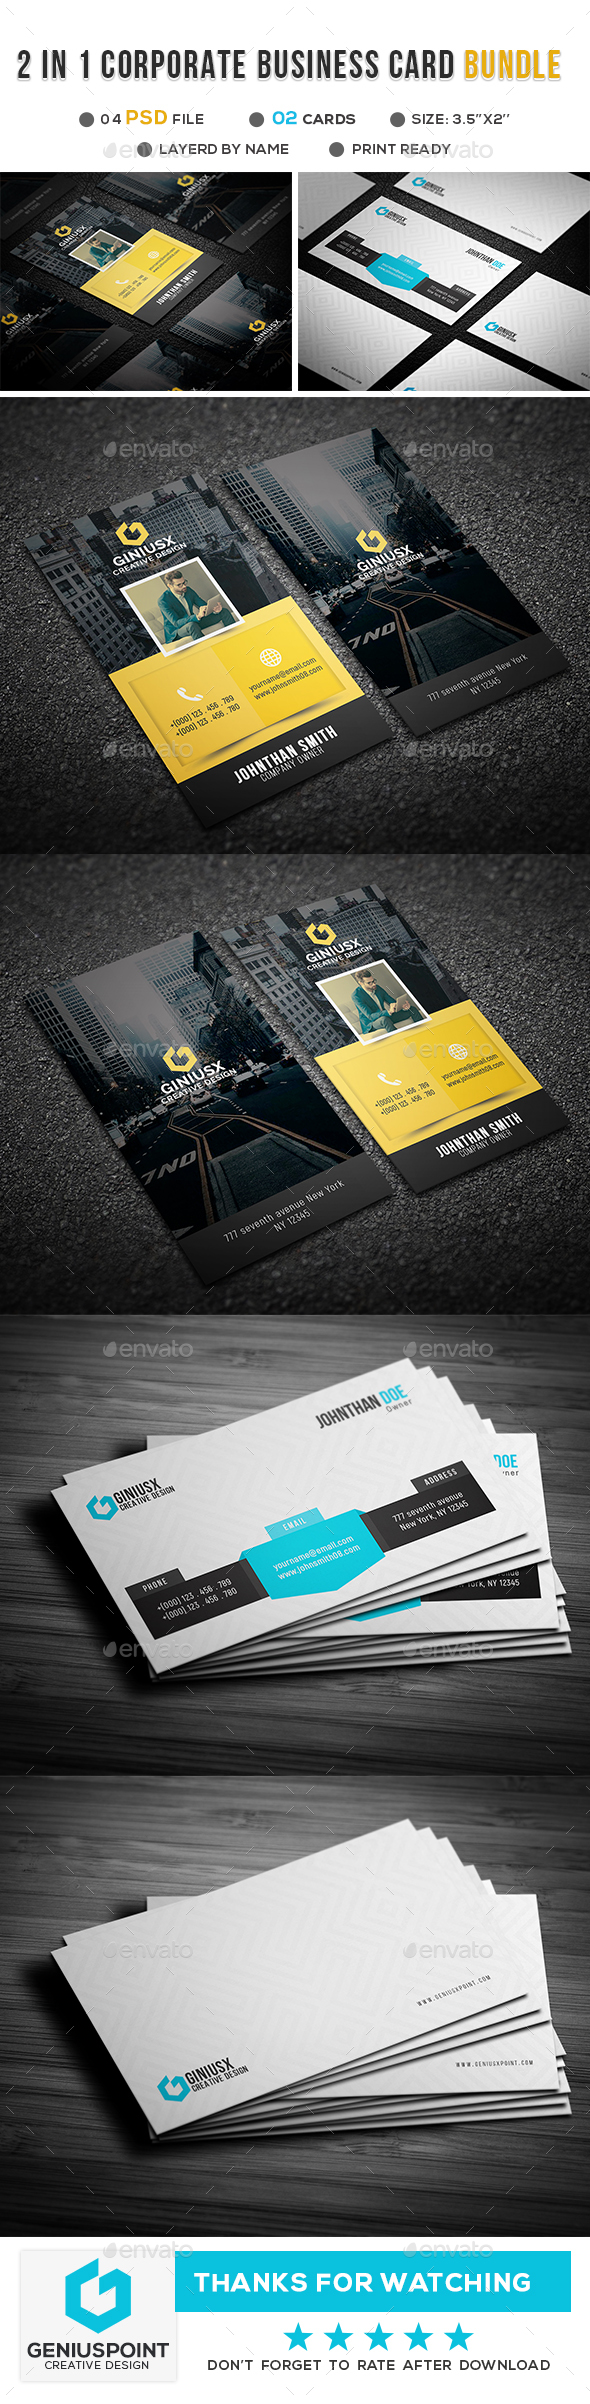 GraphicRiver 2 in 1 Corporate Business Card Bundle 21139835